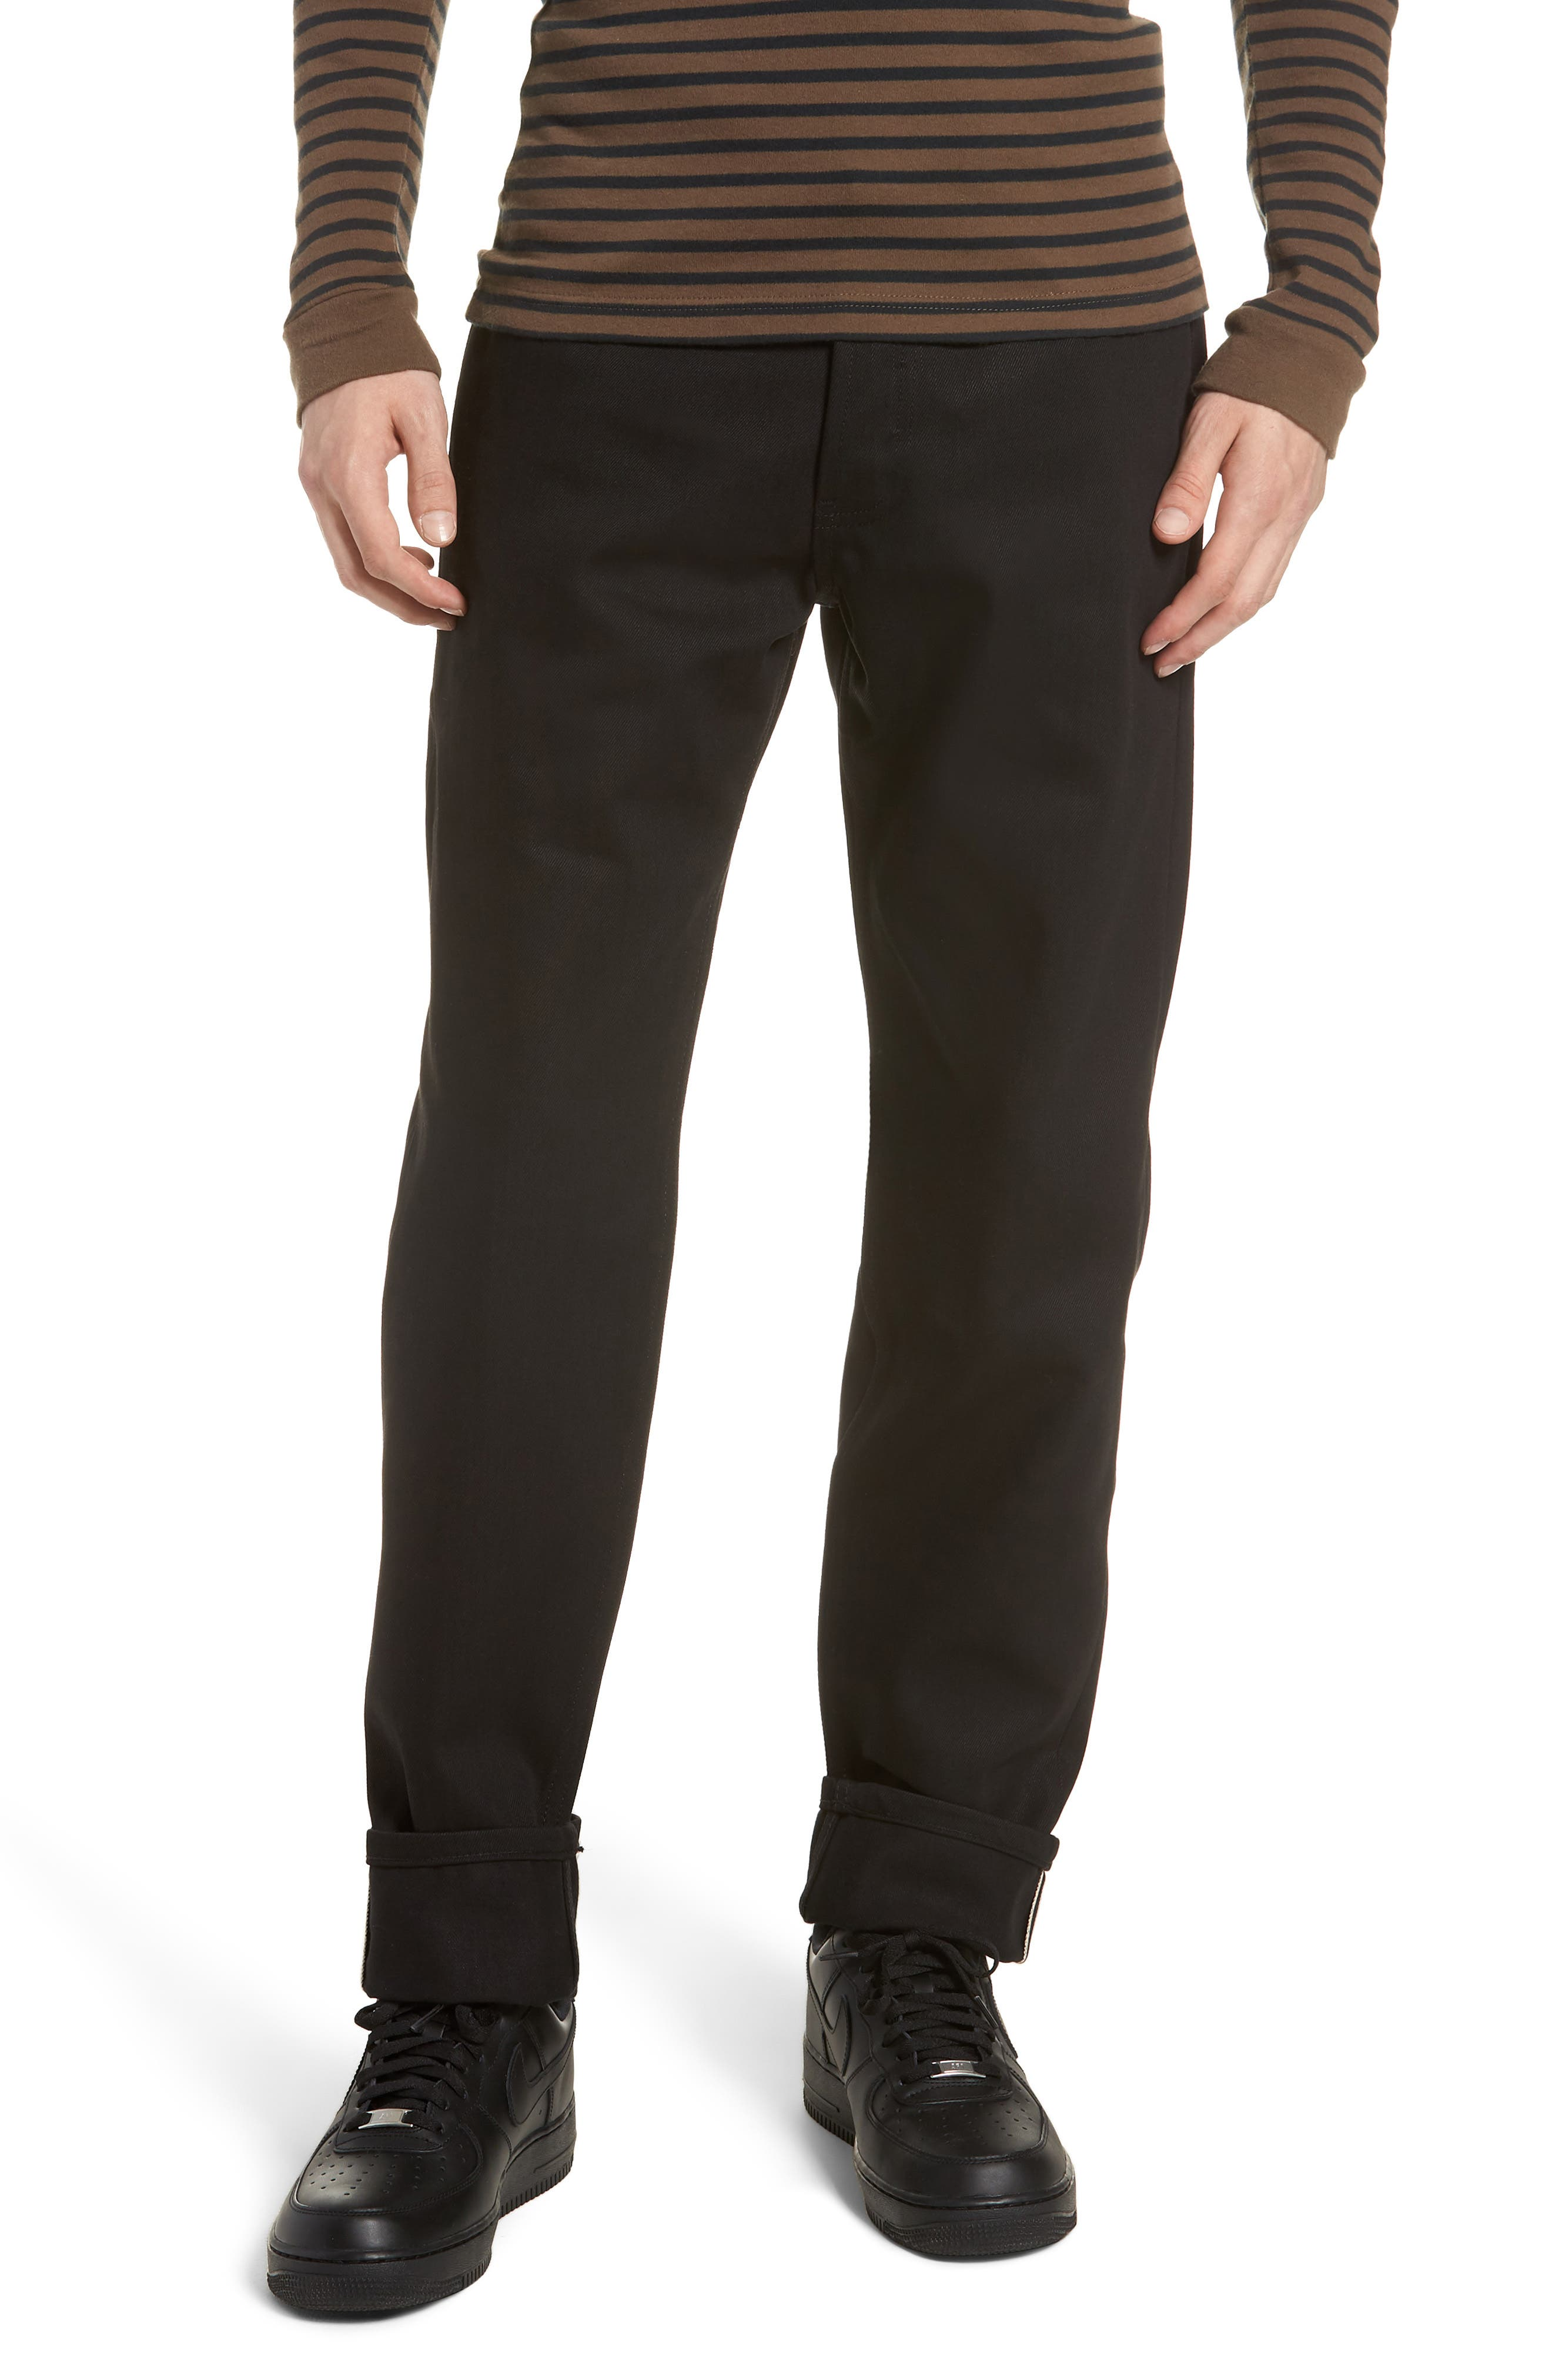 Naked & Famous Easy Guy Relaxed Fit Jeans,                             Main thumbnail 1, color,                             SOLID BLACK SELVEDGE